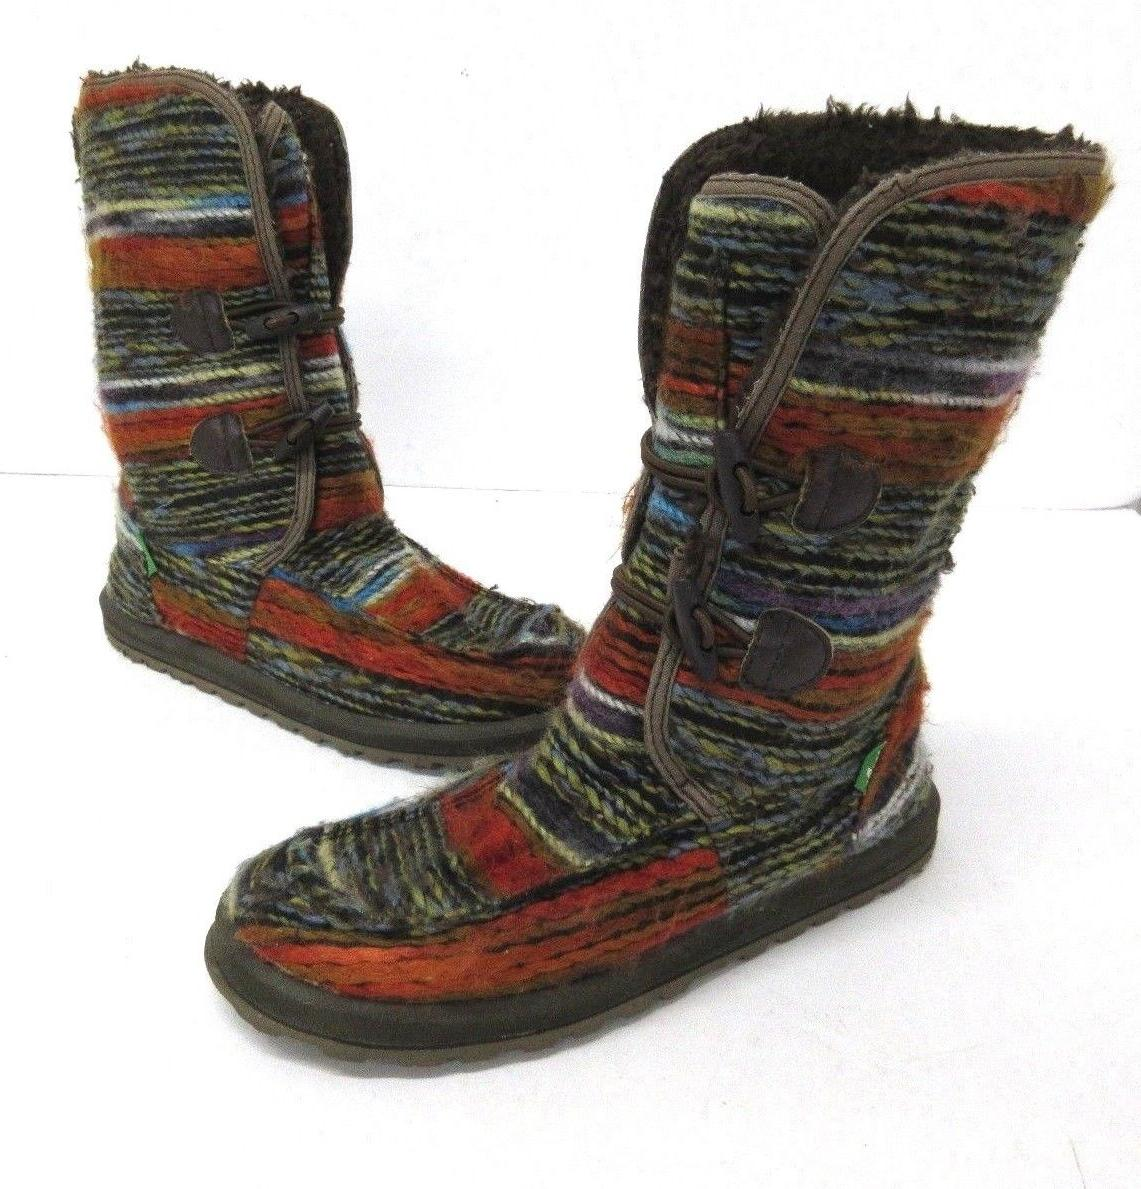 NEW Sanuk Women's Chill Fur Stitched Boots Multicolor Size 7